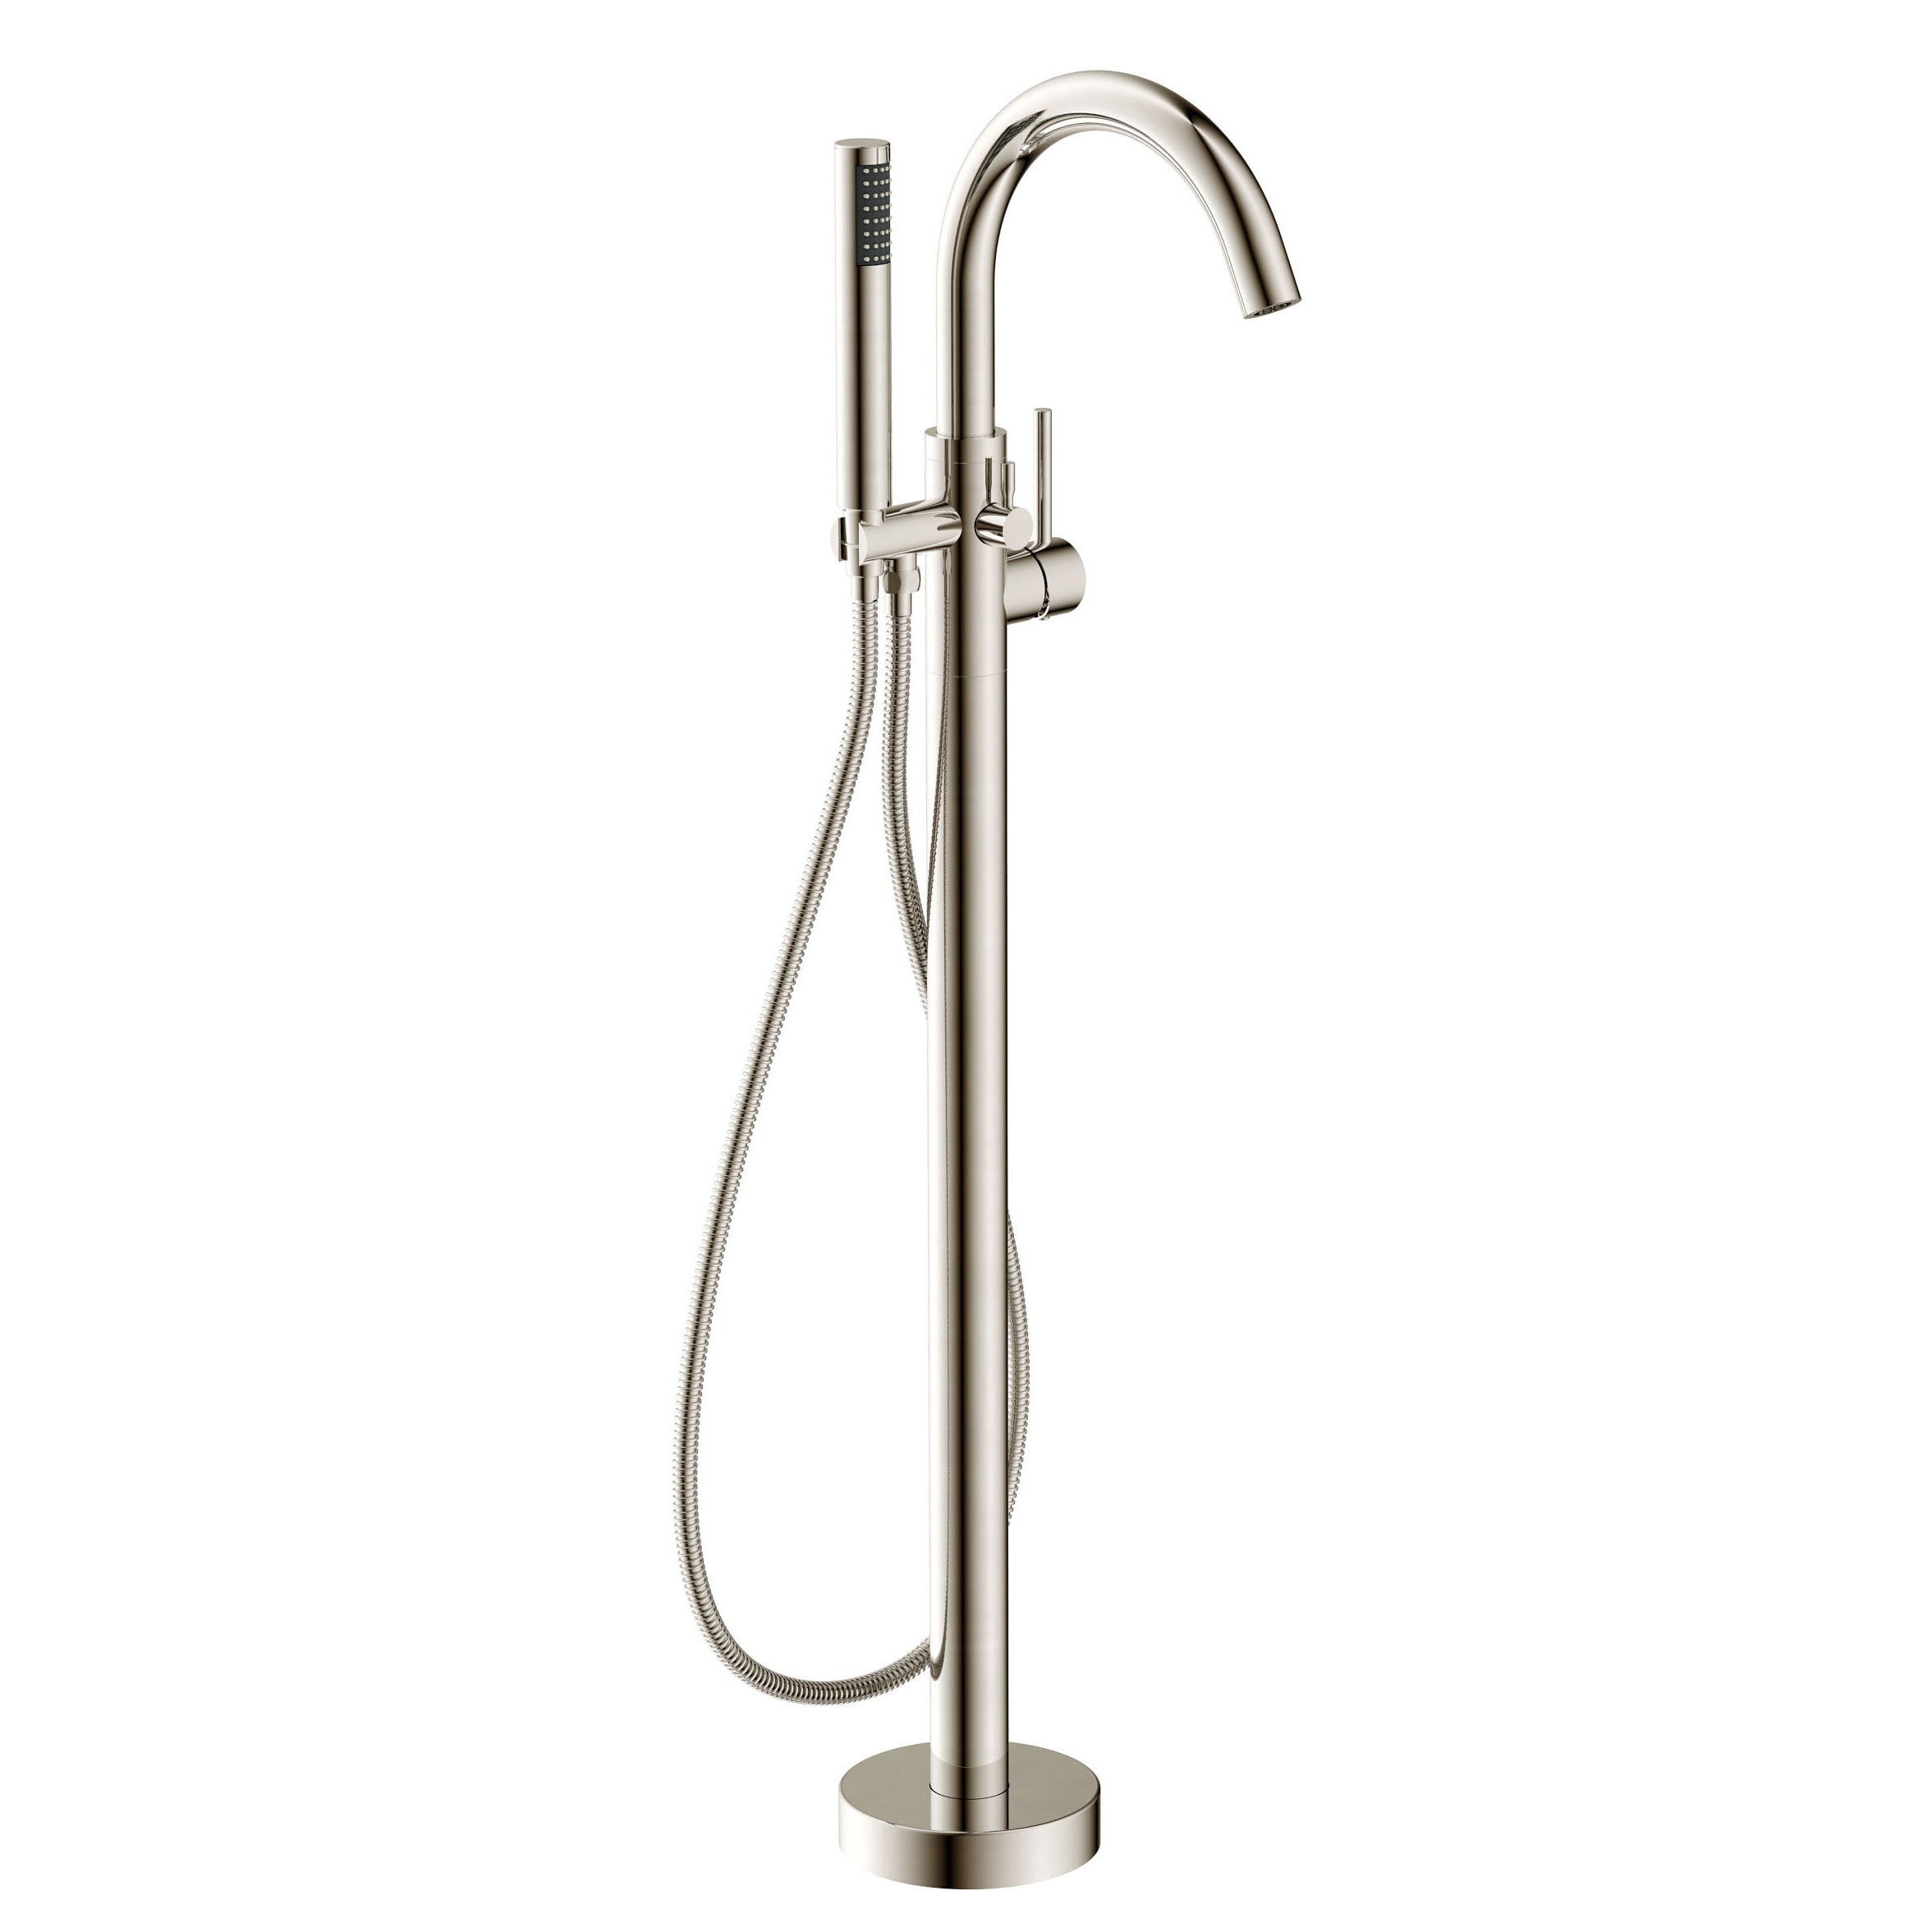 Anzzi Kros Series 2 Handle Freestanding Claw Foot Tub Faucet With Hand Shower In Brushed Nickel